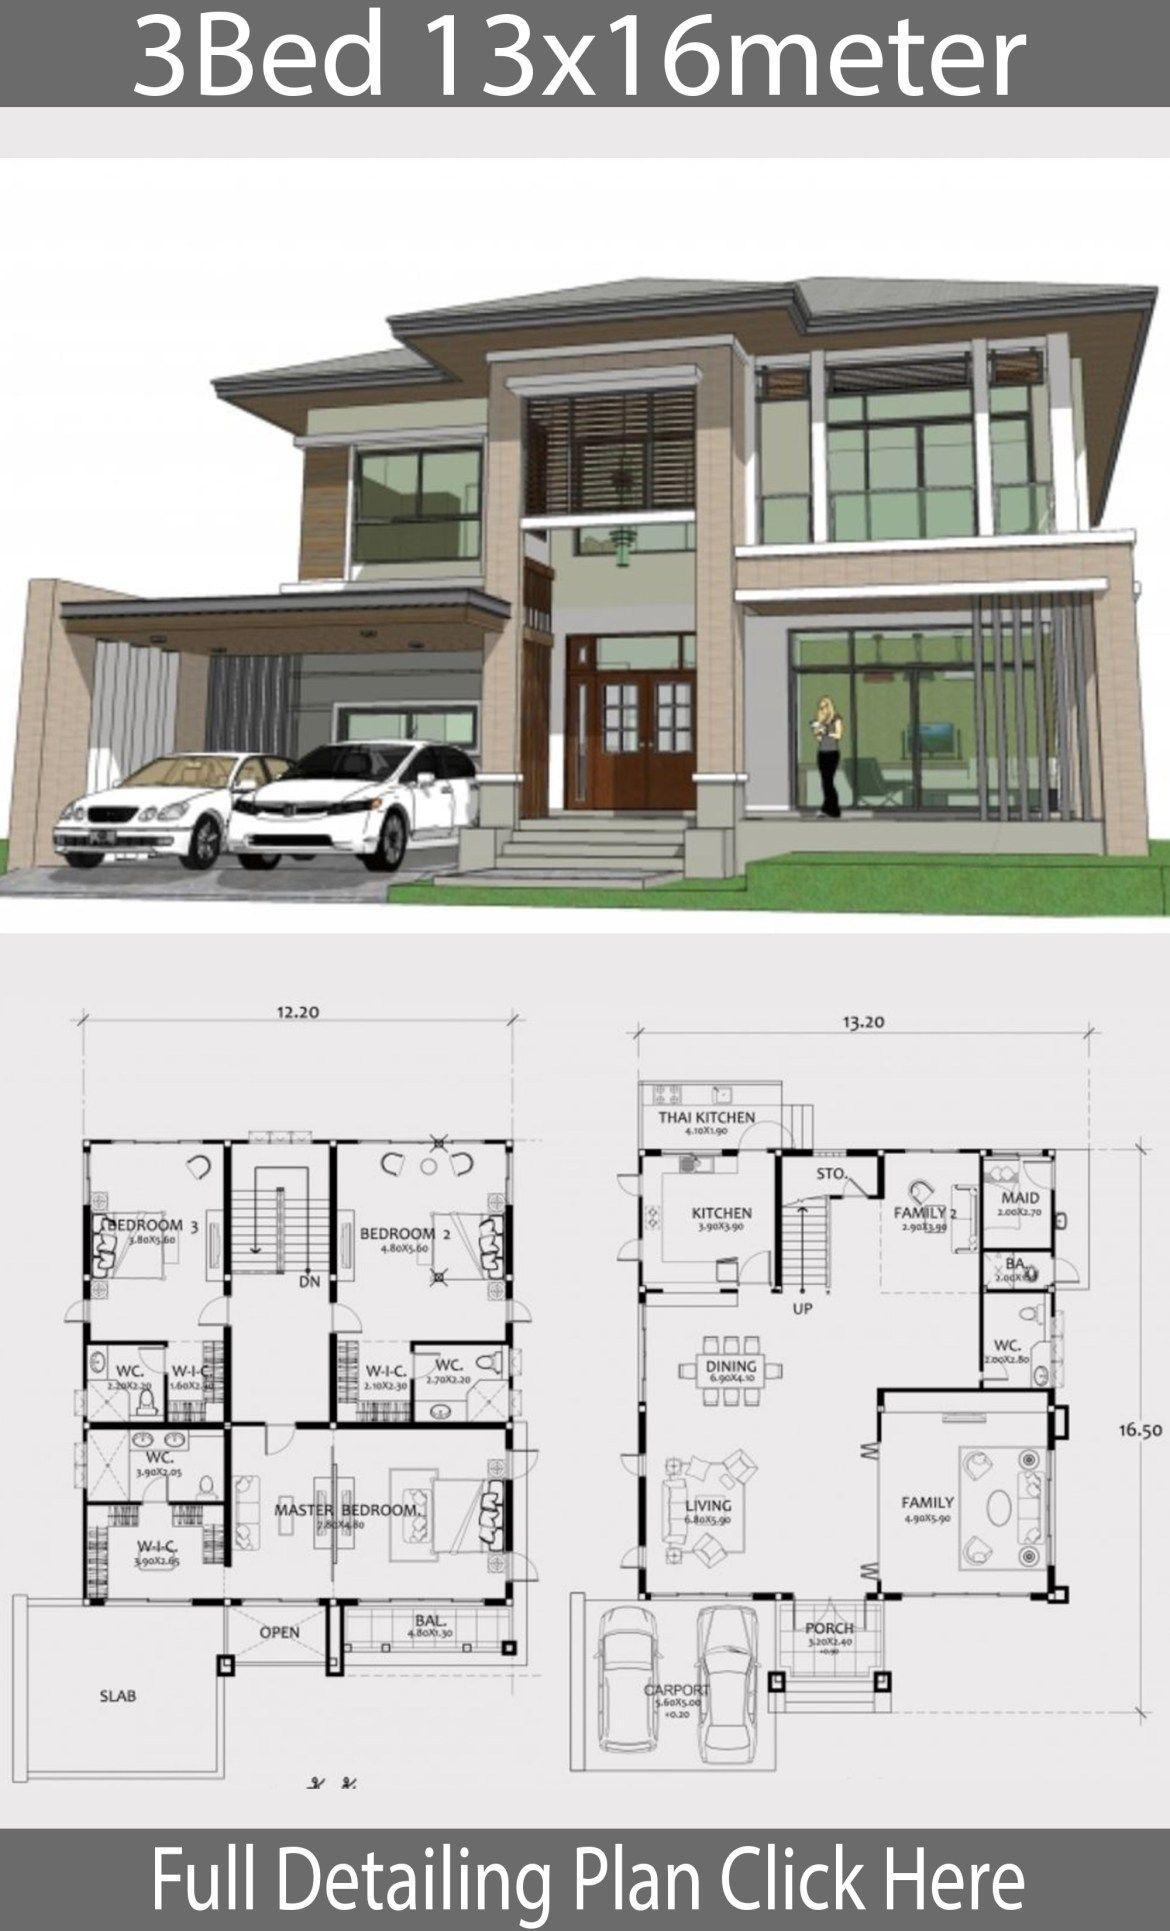 Home Design Plan 13x16m With 3 Bedrooms Home Design With Plansearch Model House Plan Architectural House Plans Home Design Plans